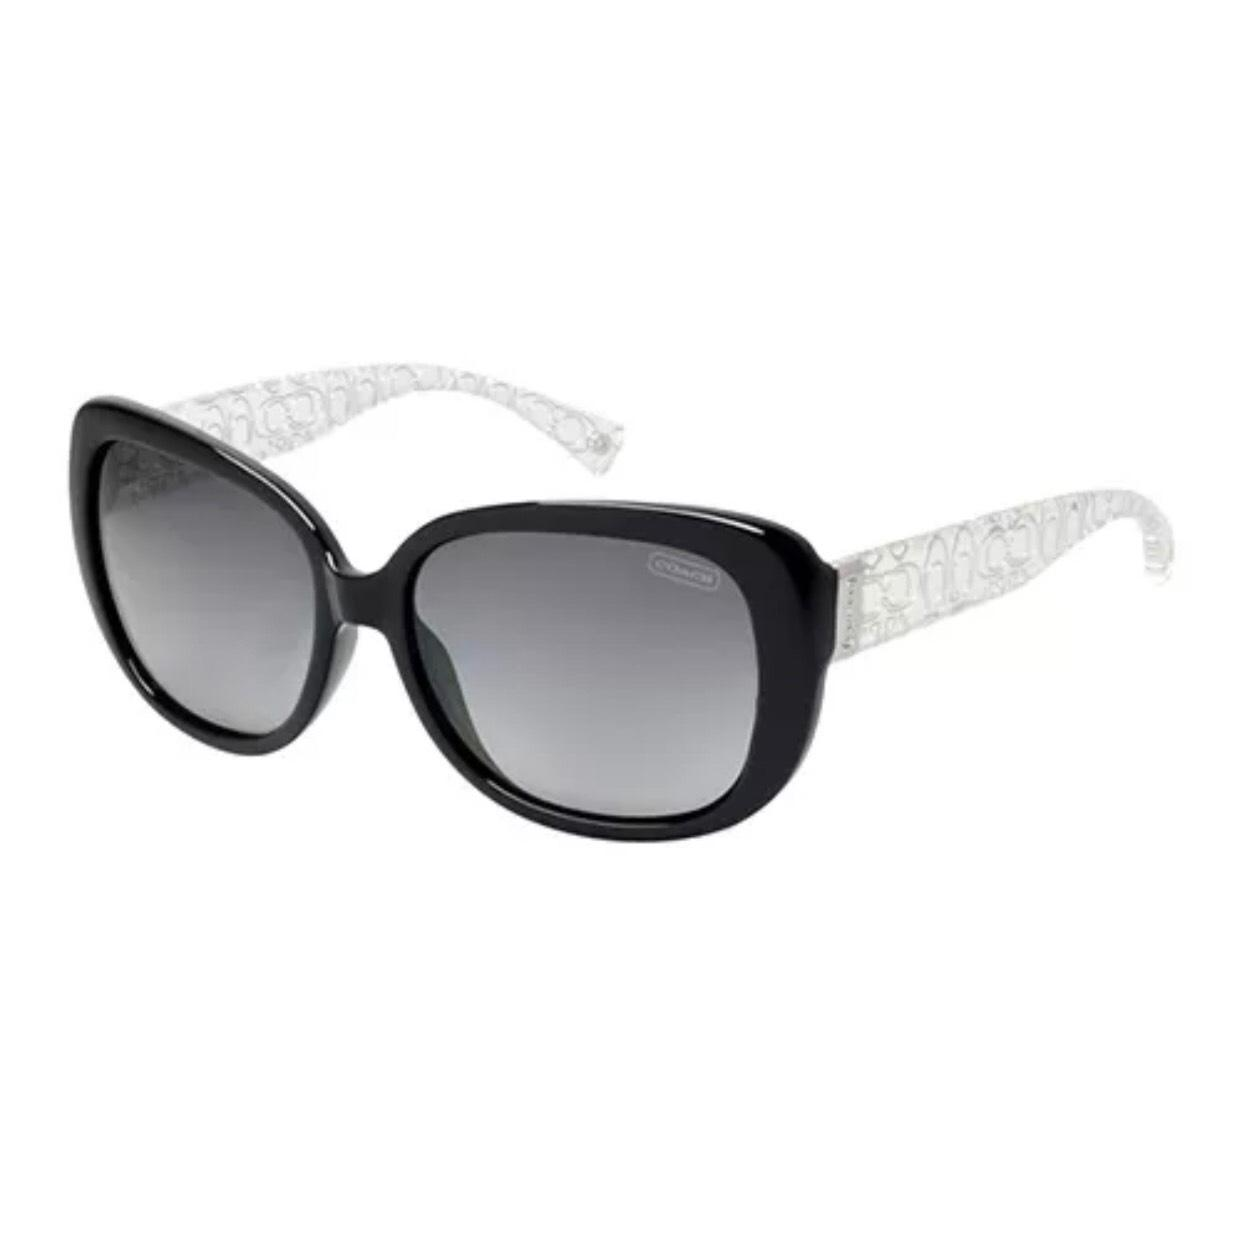 f07db895ace8 ... cheap coach sunglasses up to 70 off at tradesy f8bc9 90e93